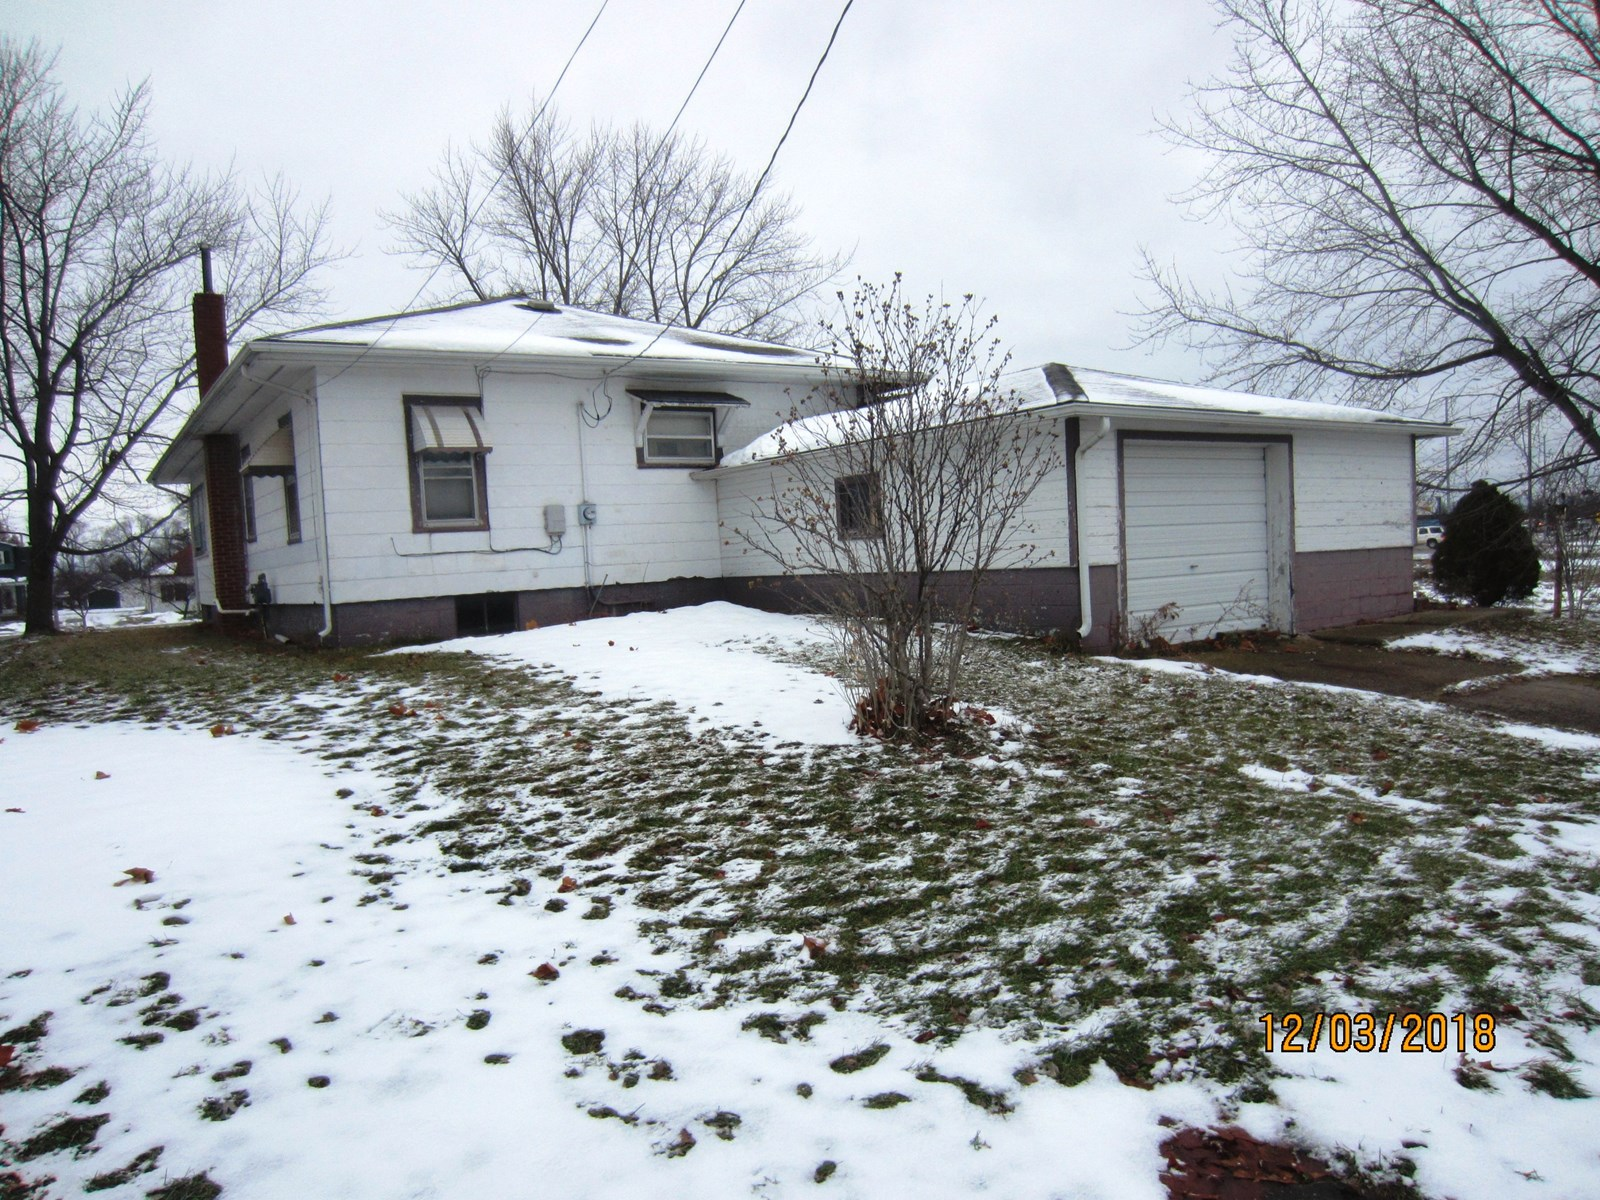 Residential Home with Business Opportunity for Sale, Albia